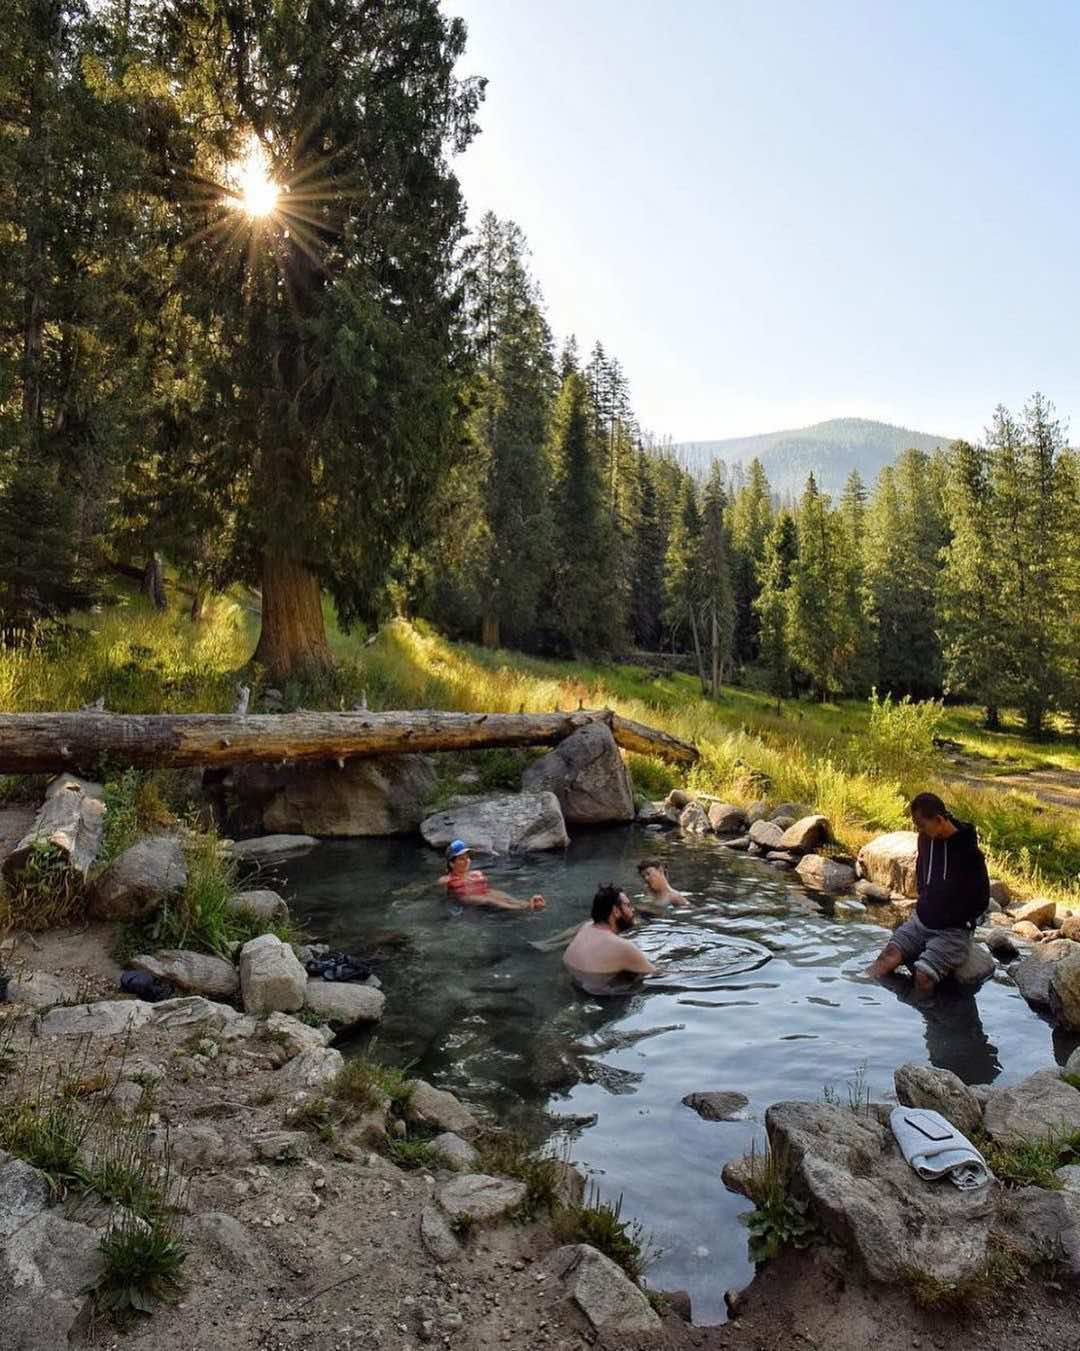 Cruise-America-Hot-Springs-National-Park-RV-Parks-visitidaho.jpg